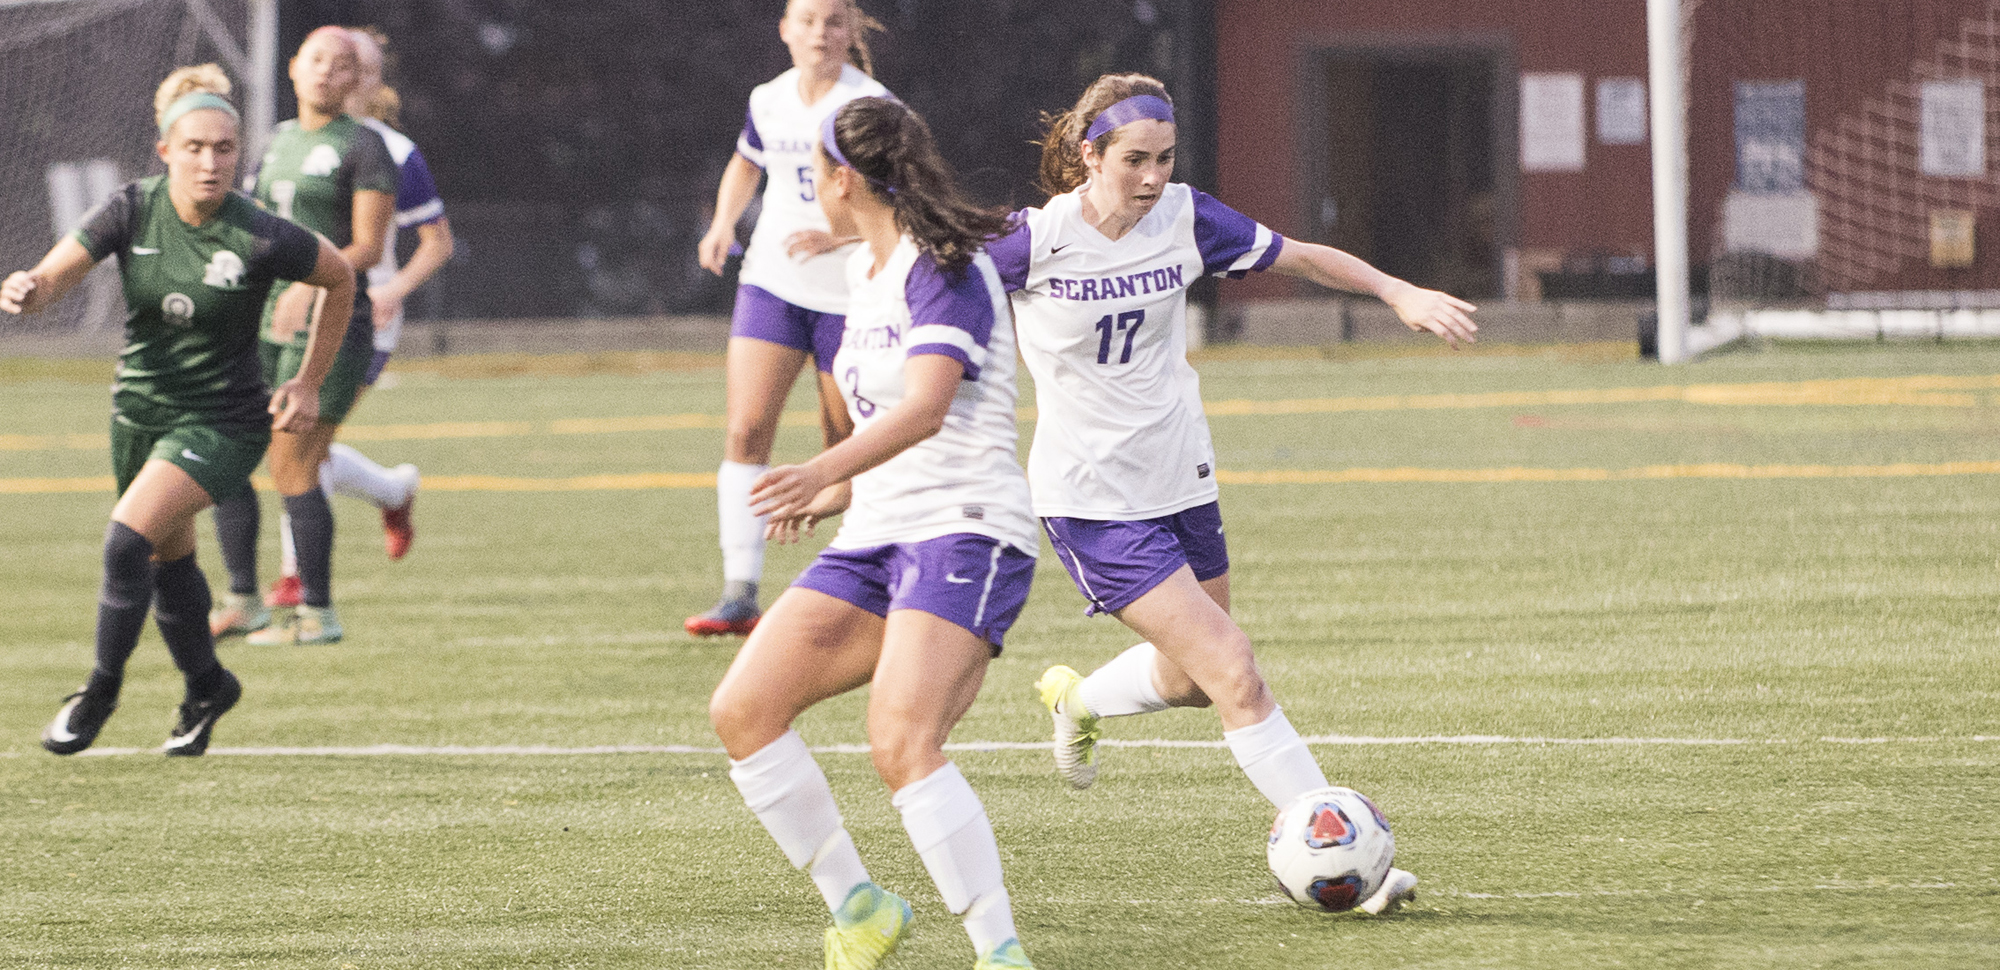 Senior Kelly Pompey (17) and junior Erica Licari (foreground) both had goals in Scranton's semifinal victory on Wednesday.